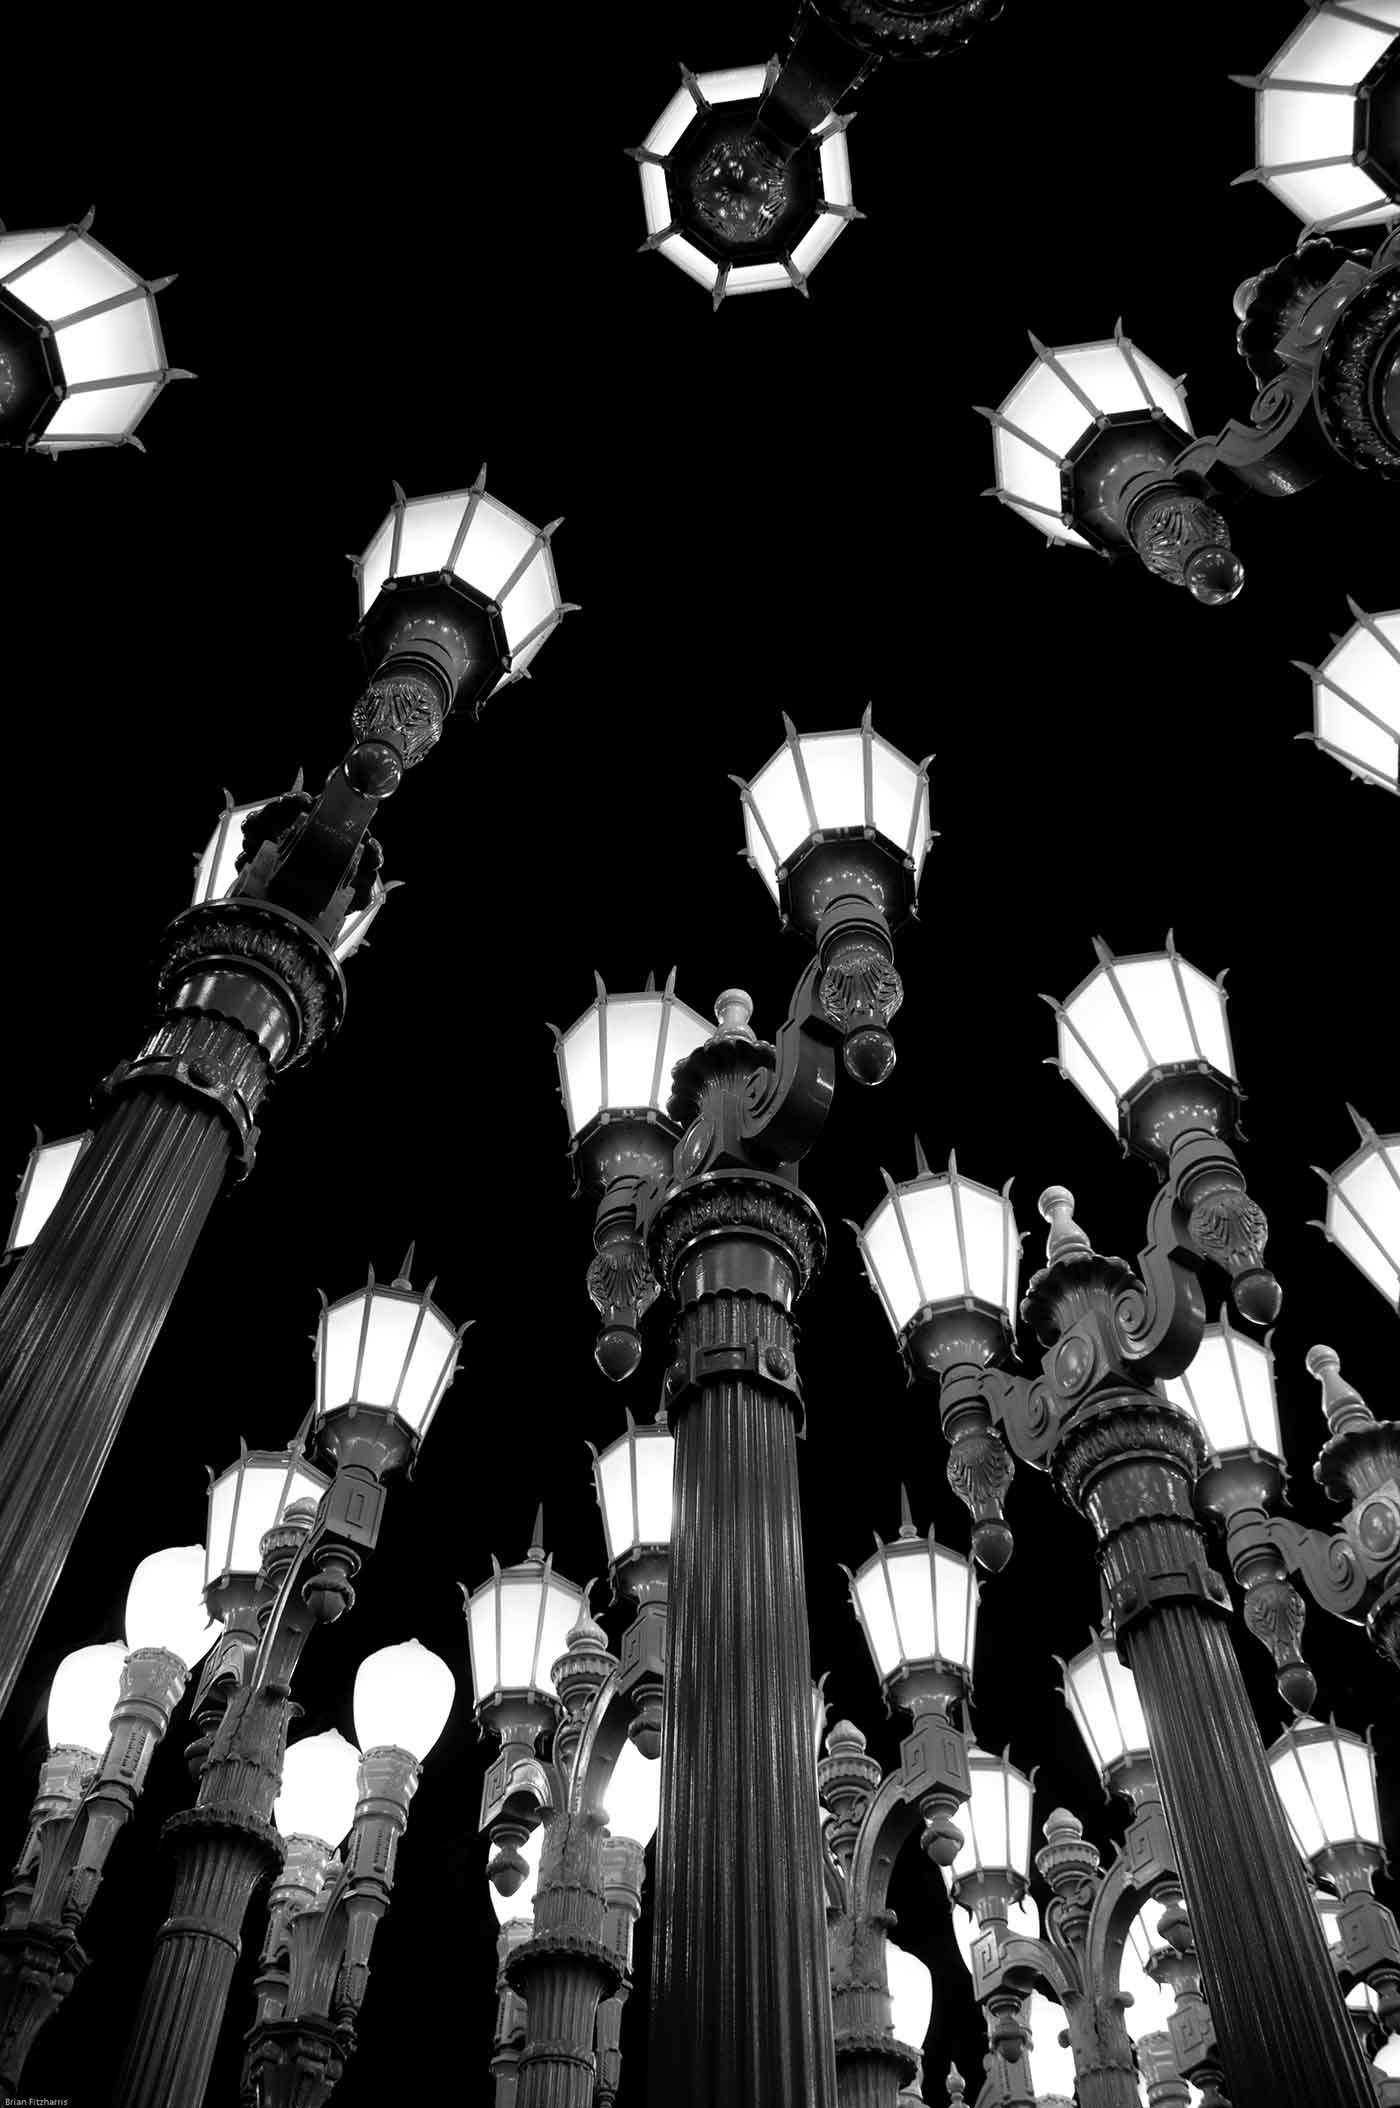 Urban Light, by Brian Fitzharris